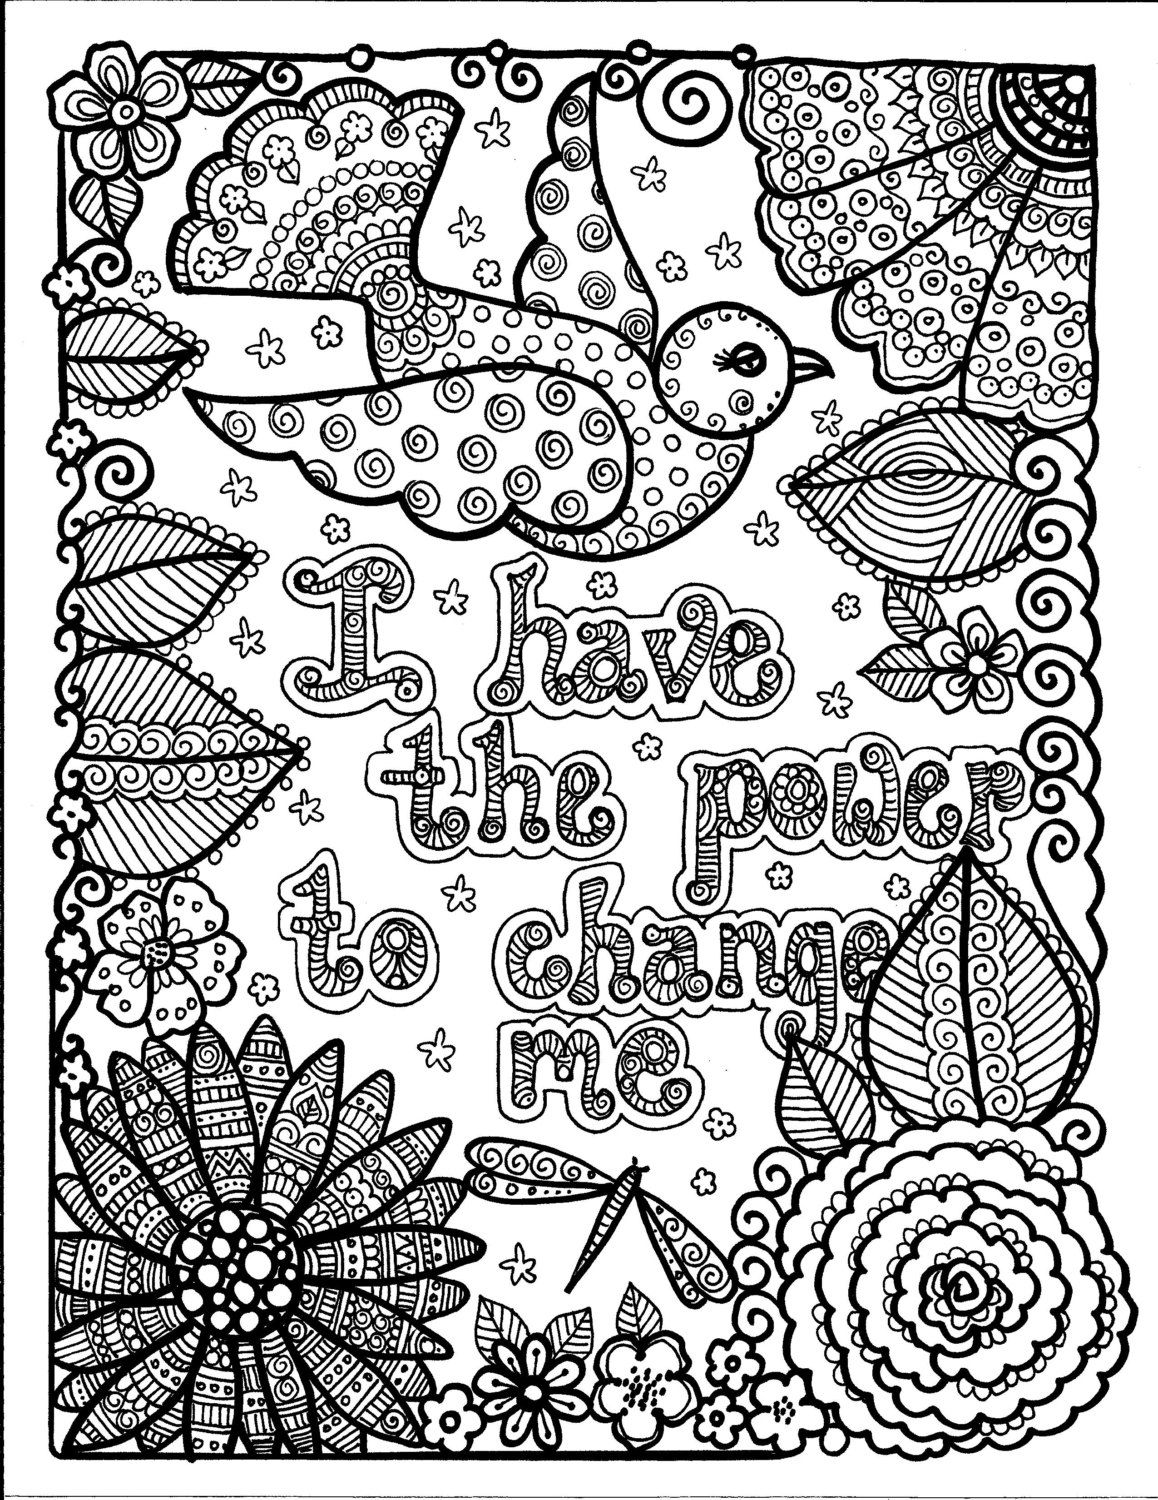 Instant Download Just Be Inspirational Art For You To Color Yoga Meditation Fun Coloring For